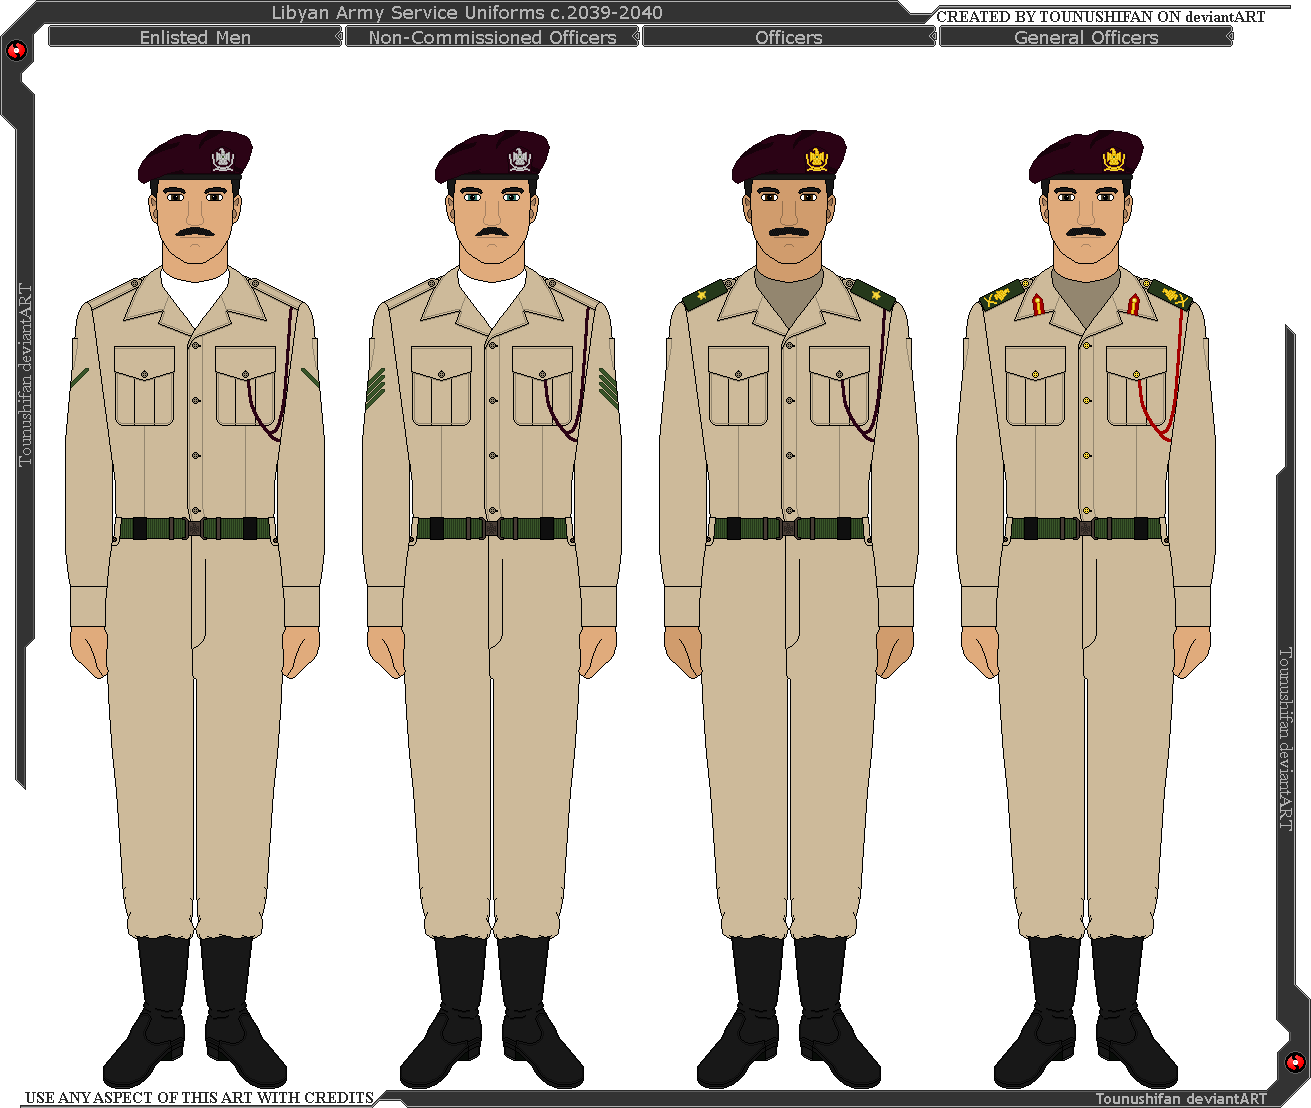 Panterria - Libyan Army Service Uniforms by Grand-Lobster-King on DeviantArt